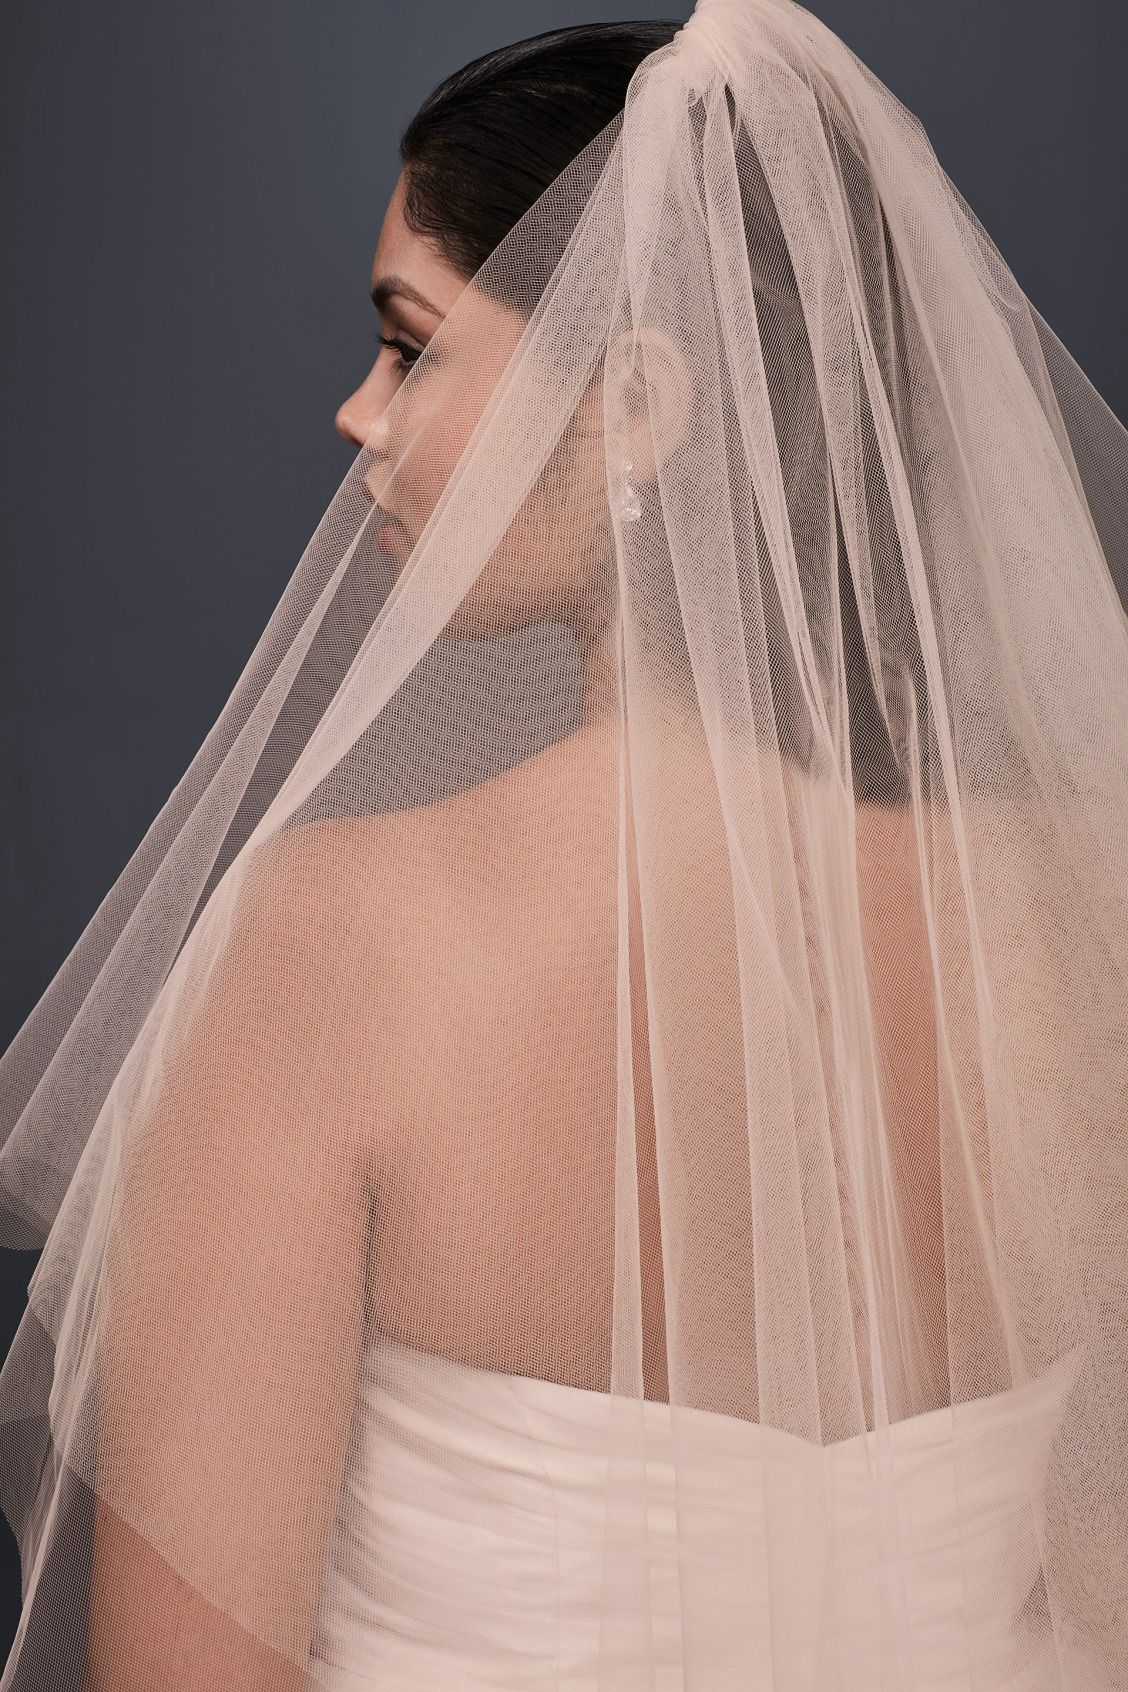 A Whisper Pink Veil For A Hint Of Color On Your Wedding Day